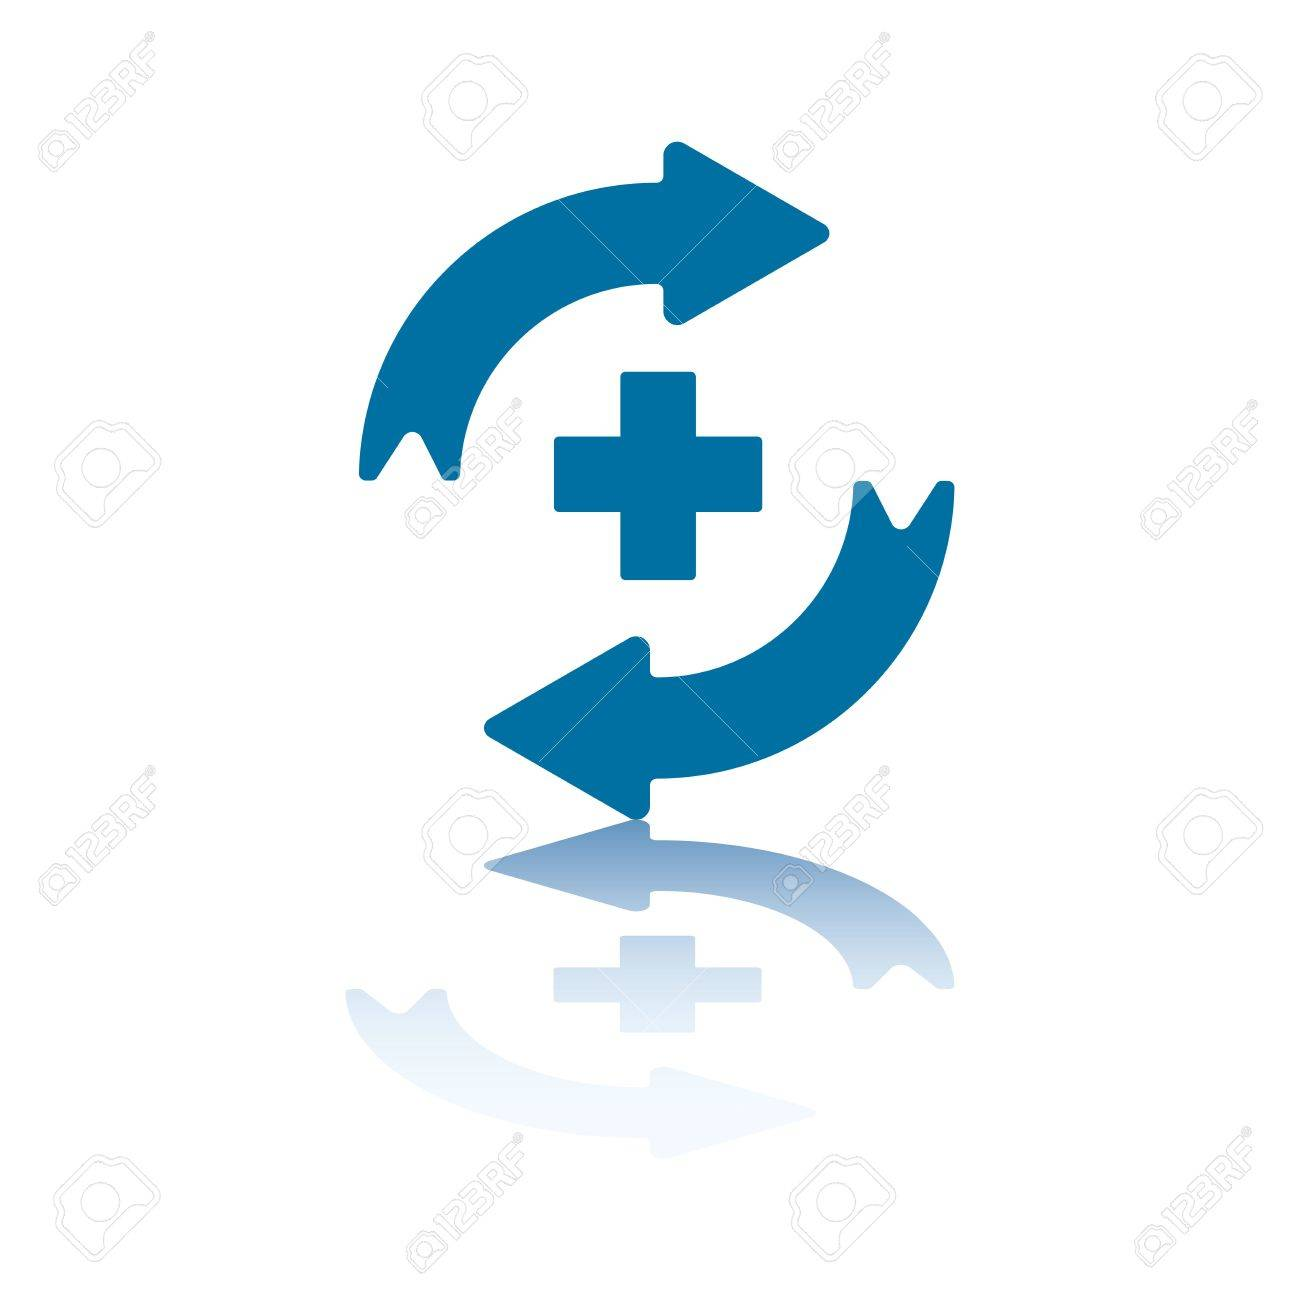 Reload/Refresh Arrows, Two Opposite Symmetrical Arrows with Plus Sign Between Them Stock Photo - 3415990